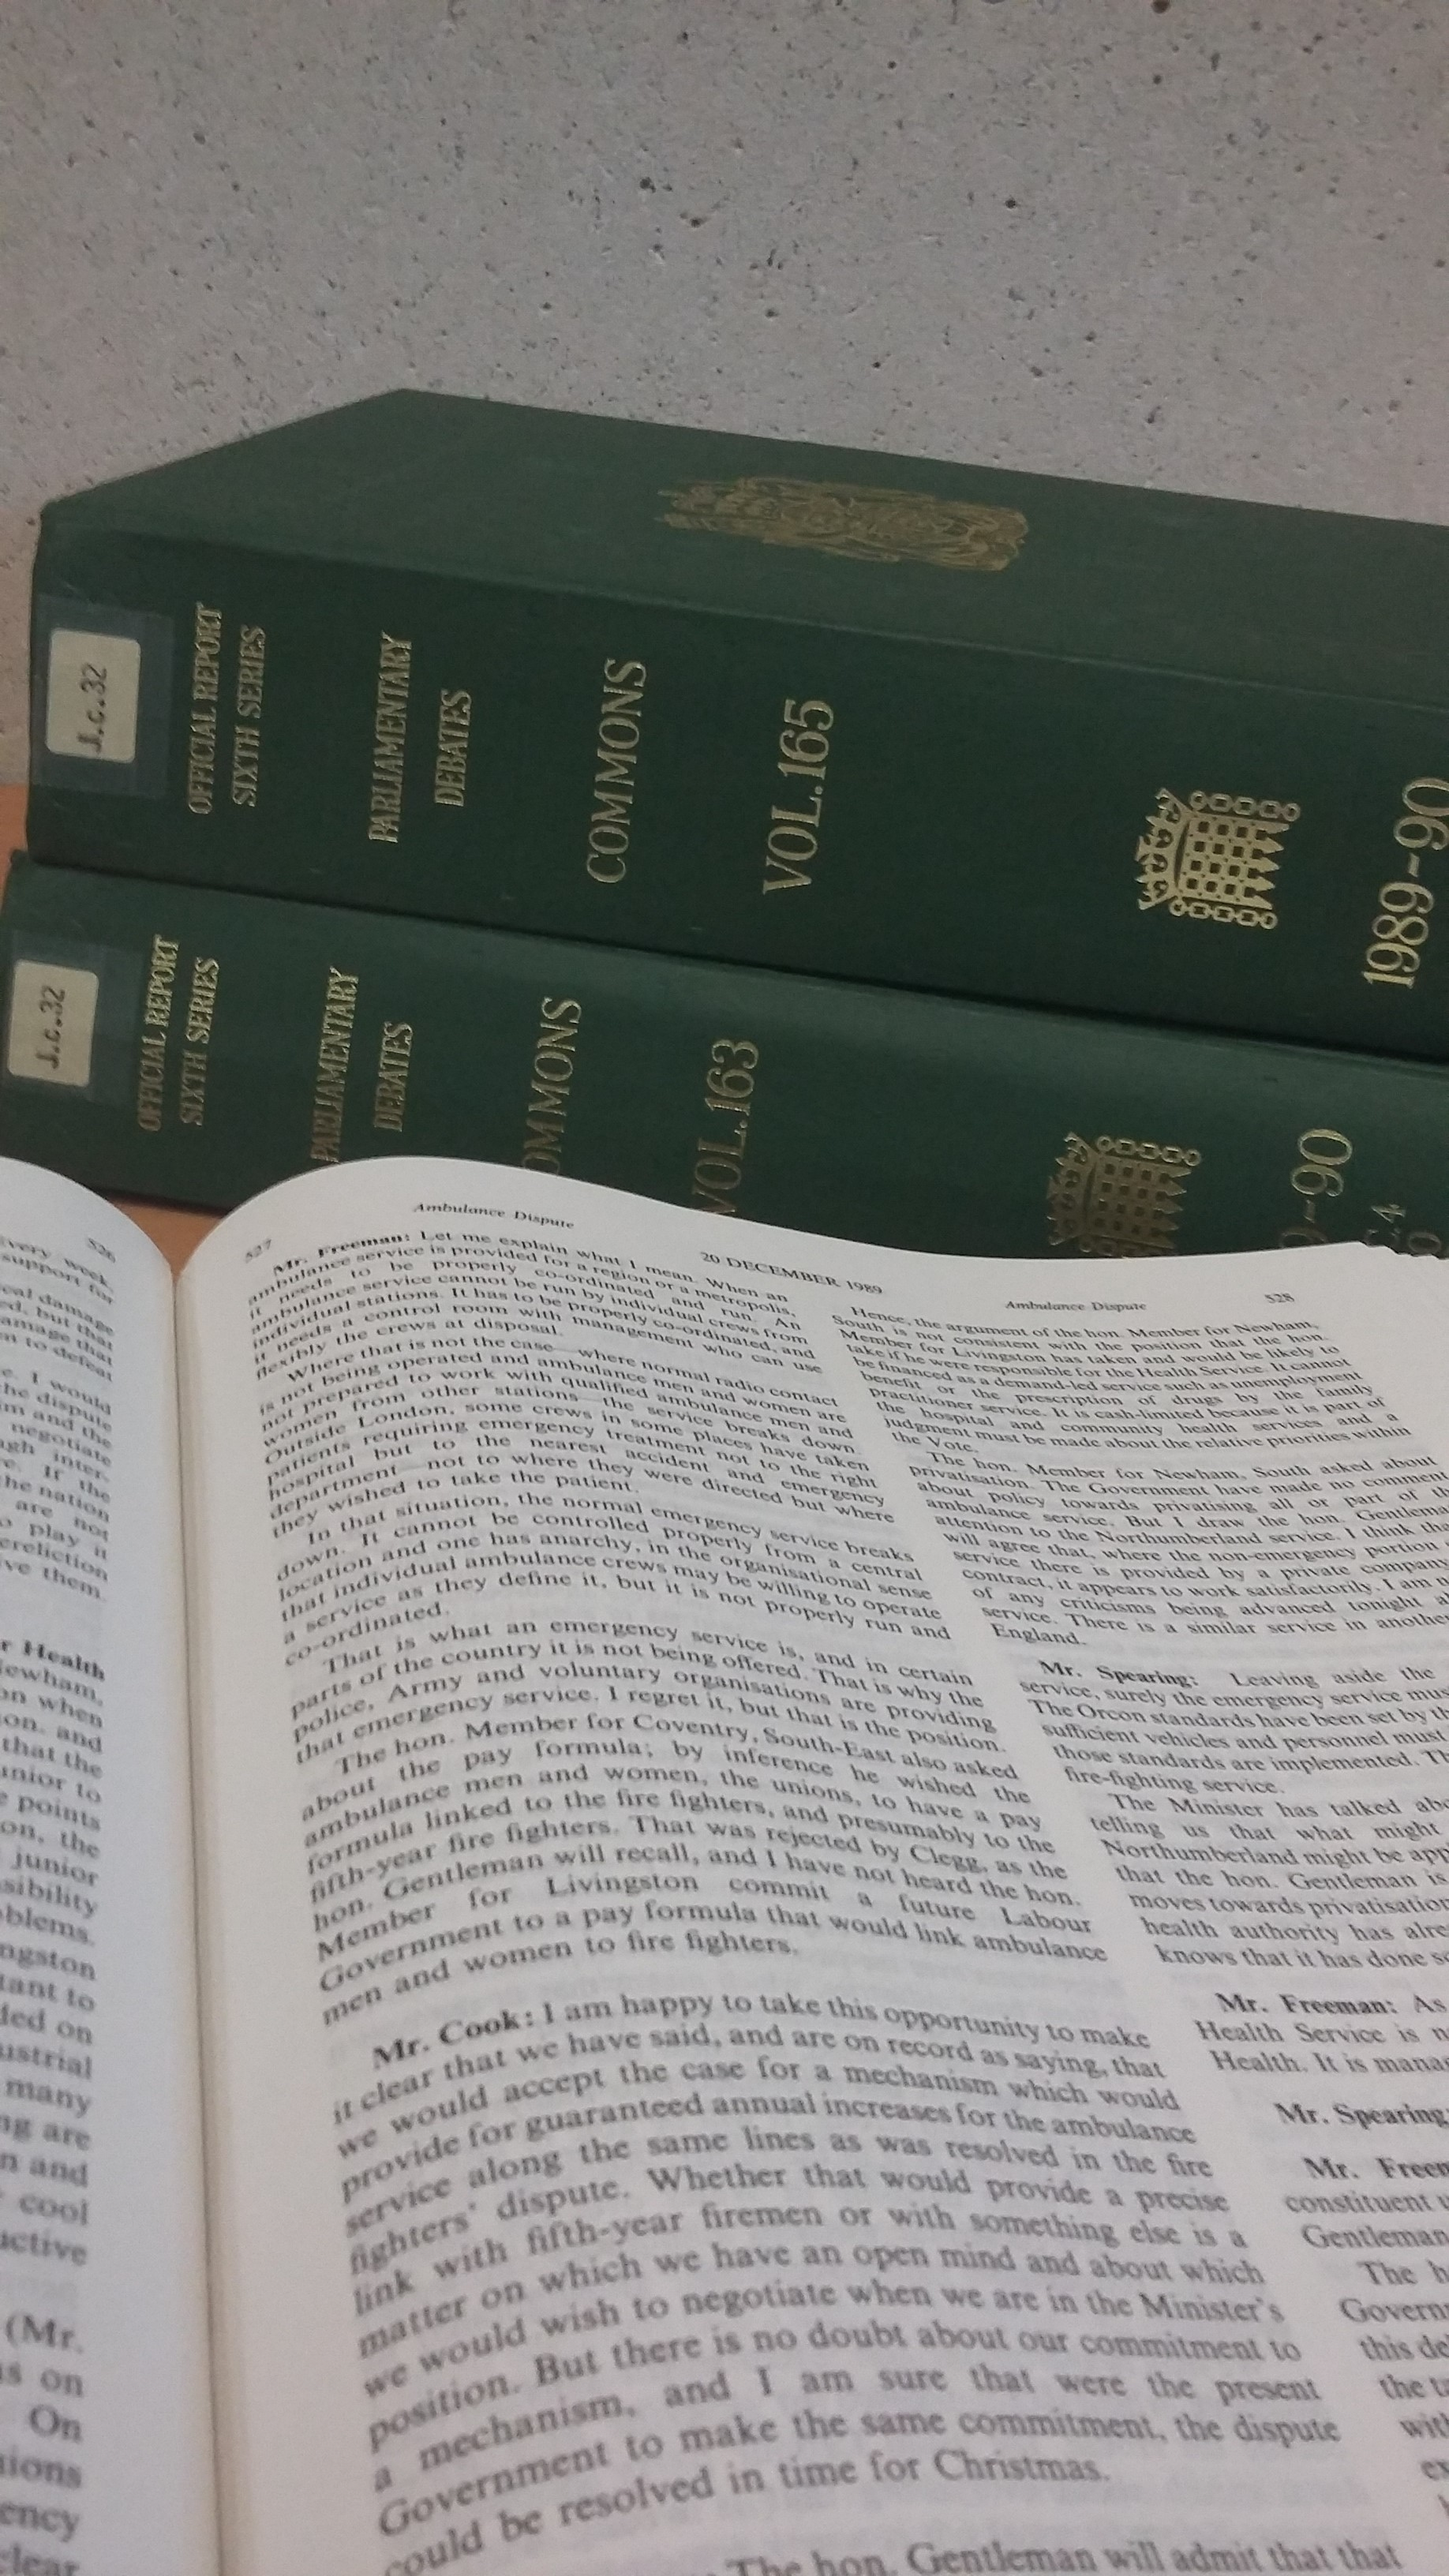 Photo of two green volumes of Hansard (parliamentary debates) with an open volume in front.